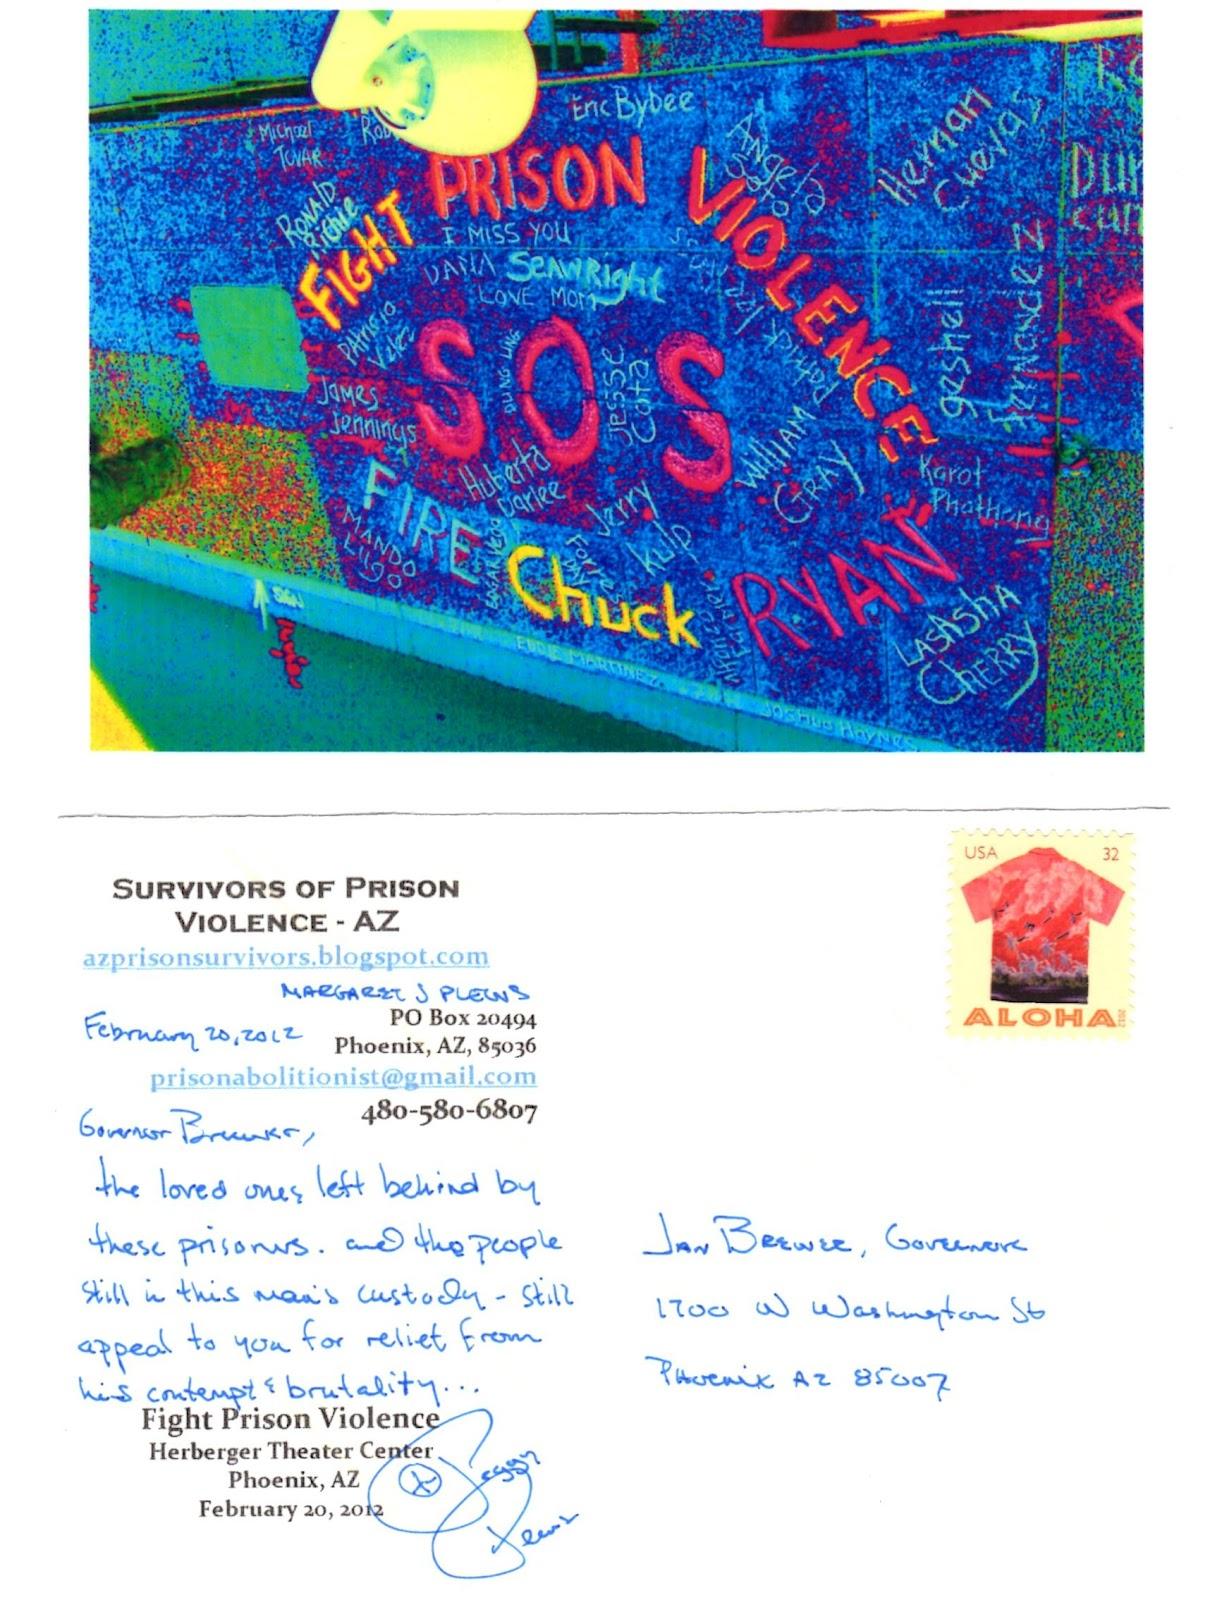 Arizona prison watch february 2012 anyone who is similarly moved to communicate with the governor may want to do so in a public forum so you cant be as easily ignored thecheapjerseys Image collections